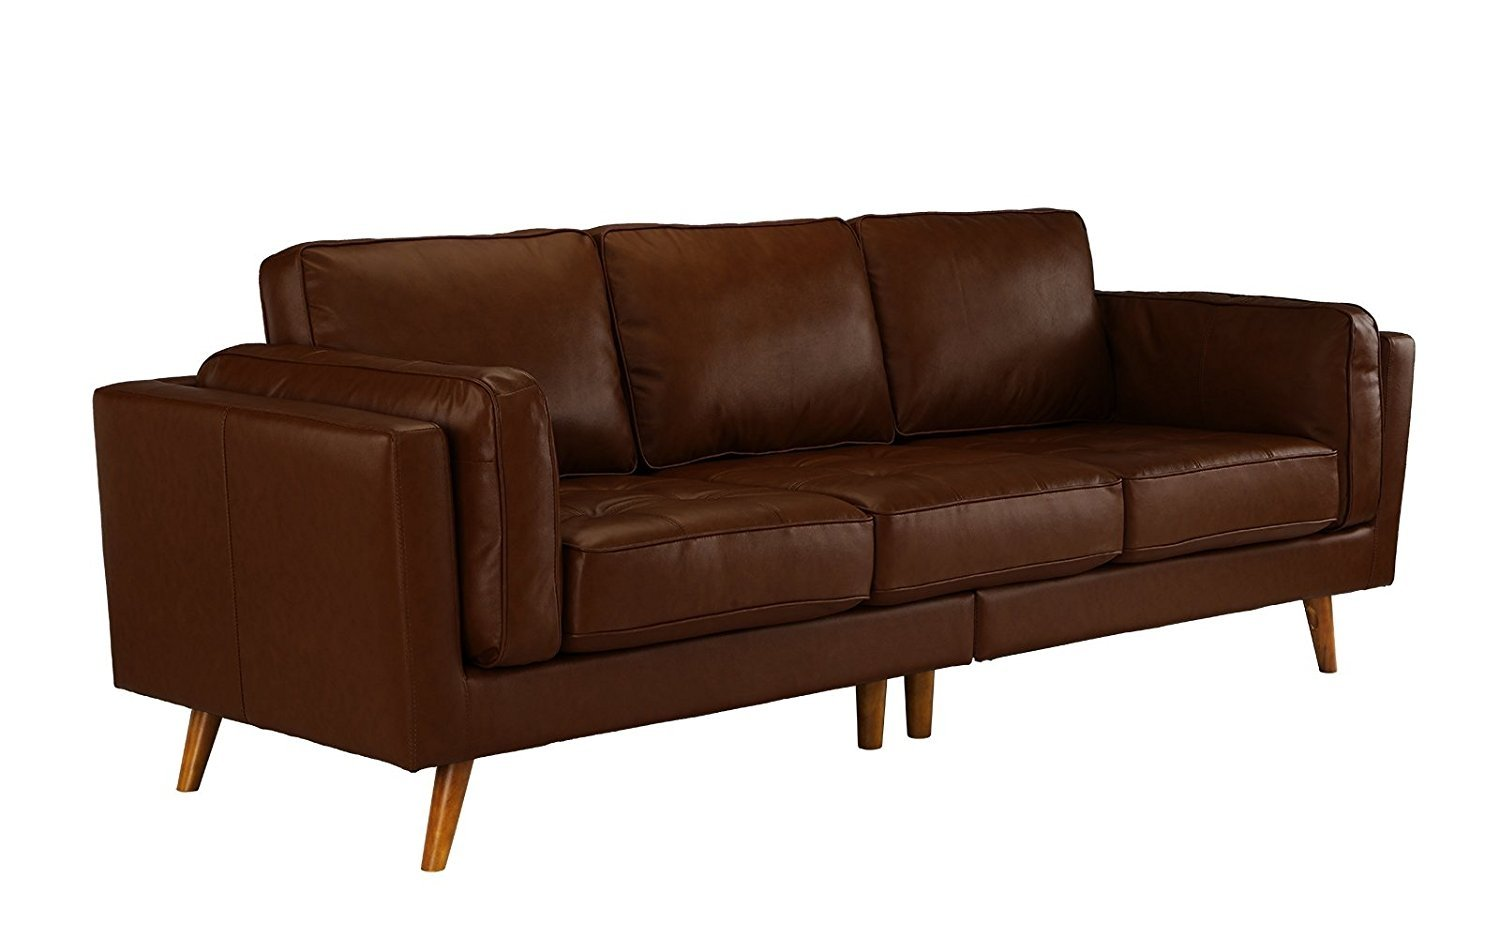 Details About Classic Mid Century Modern Couch Tufted Leather Sofa Wooden Legs Dark Brown